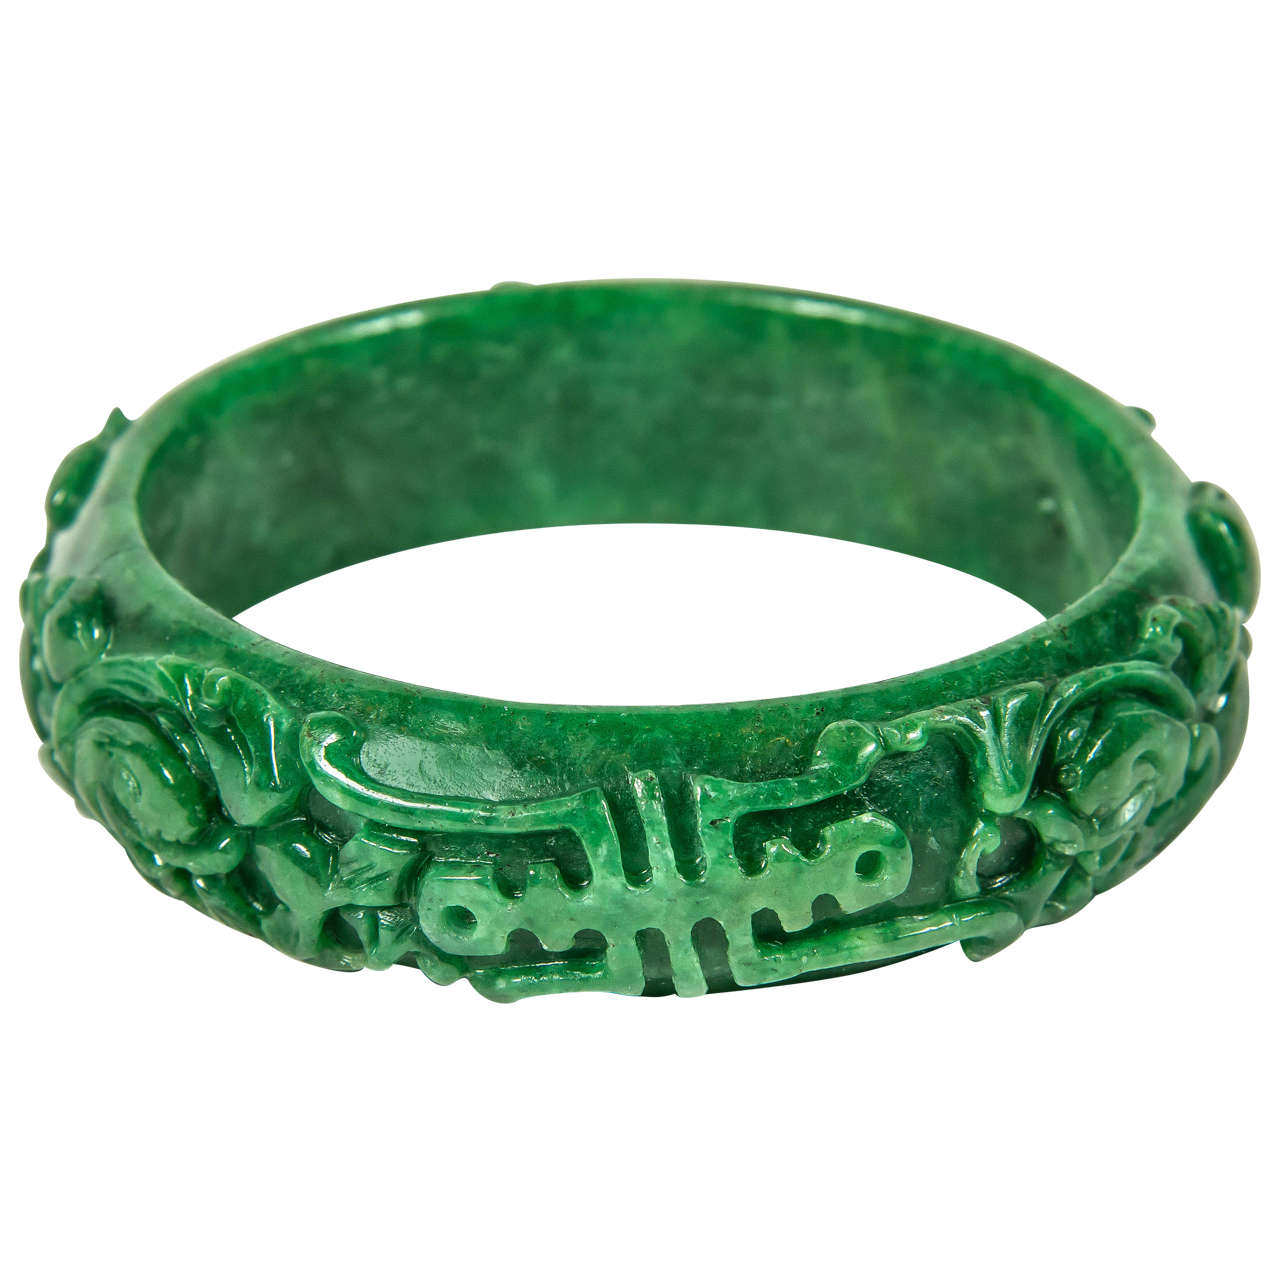 Exquisite Hand Carved Chinese Stylized Floral Scroll Design Stone Bangle For Sale